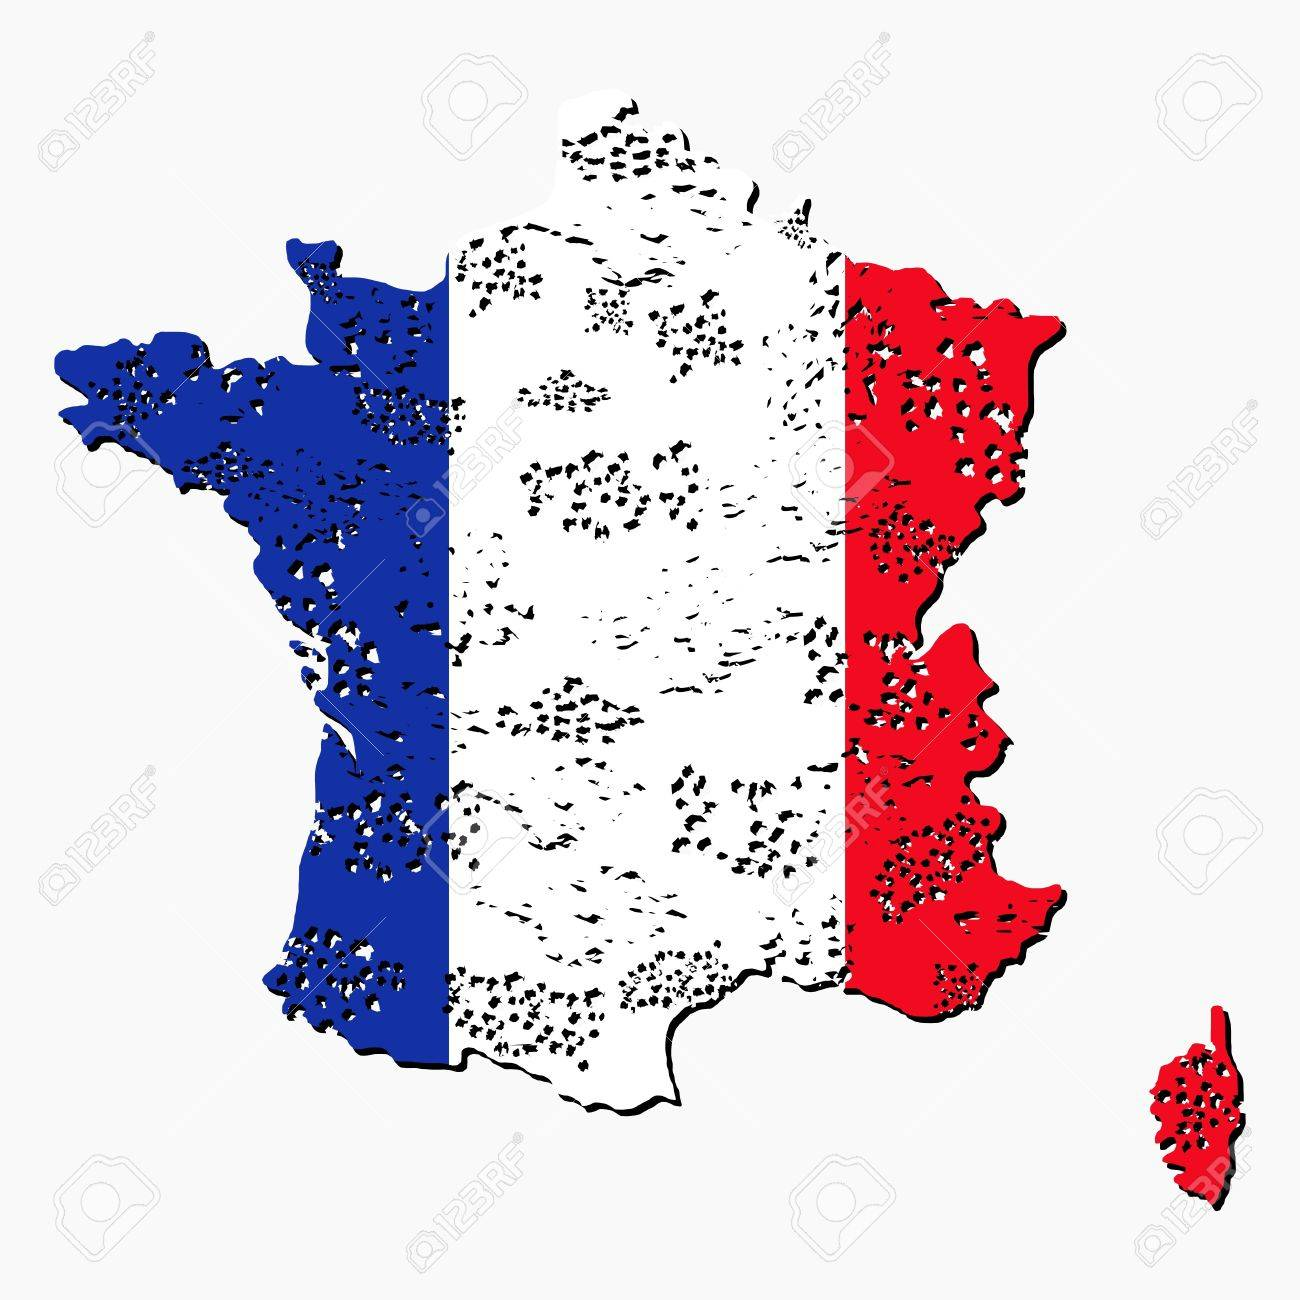 France Map Flag.Grunge France Map Flag With Shadow Illustration Stock Photo Picture